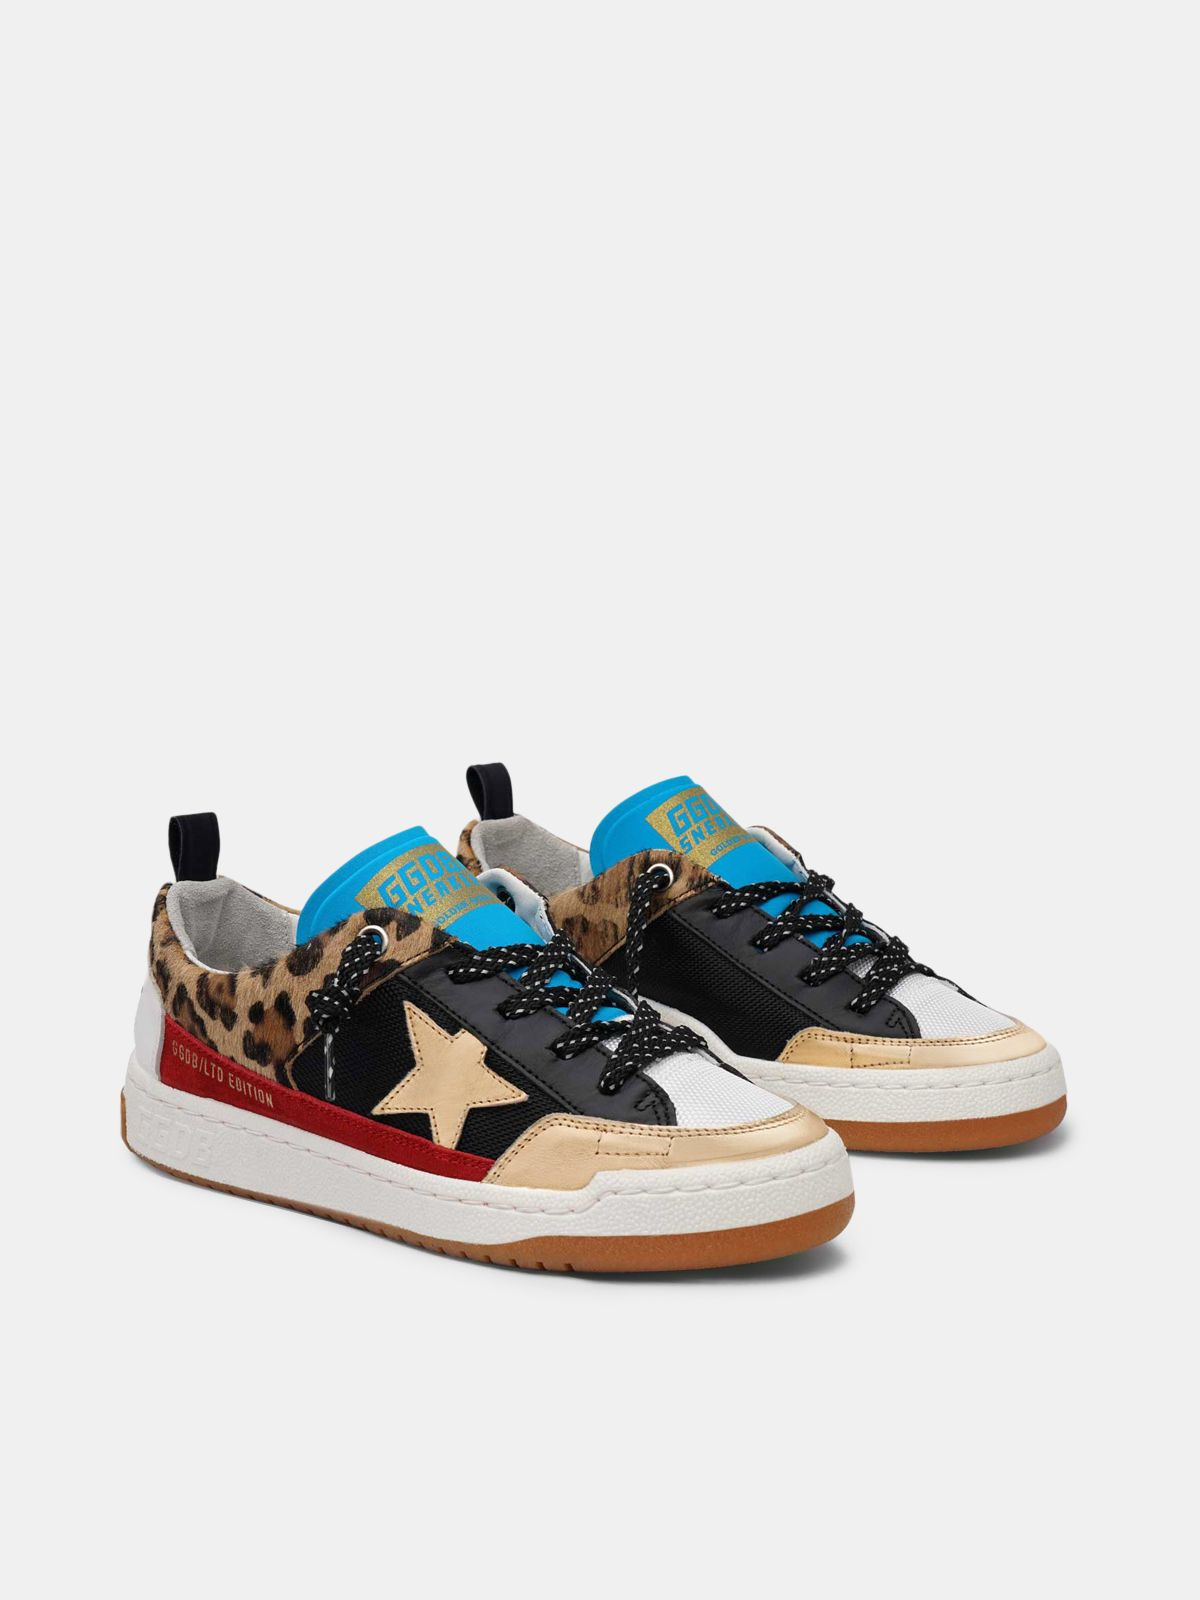 Golden Goose - Yeah! sneakers in leopard-print with gold star in